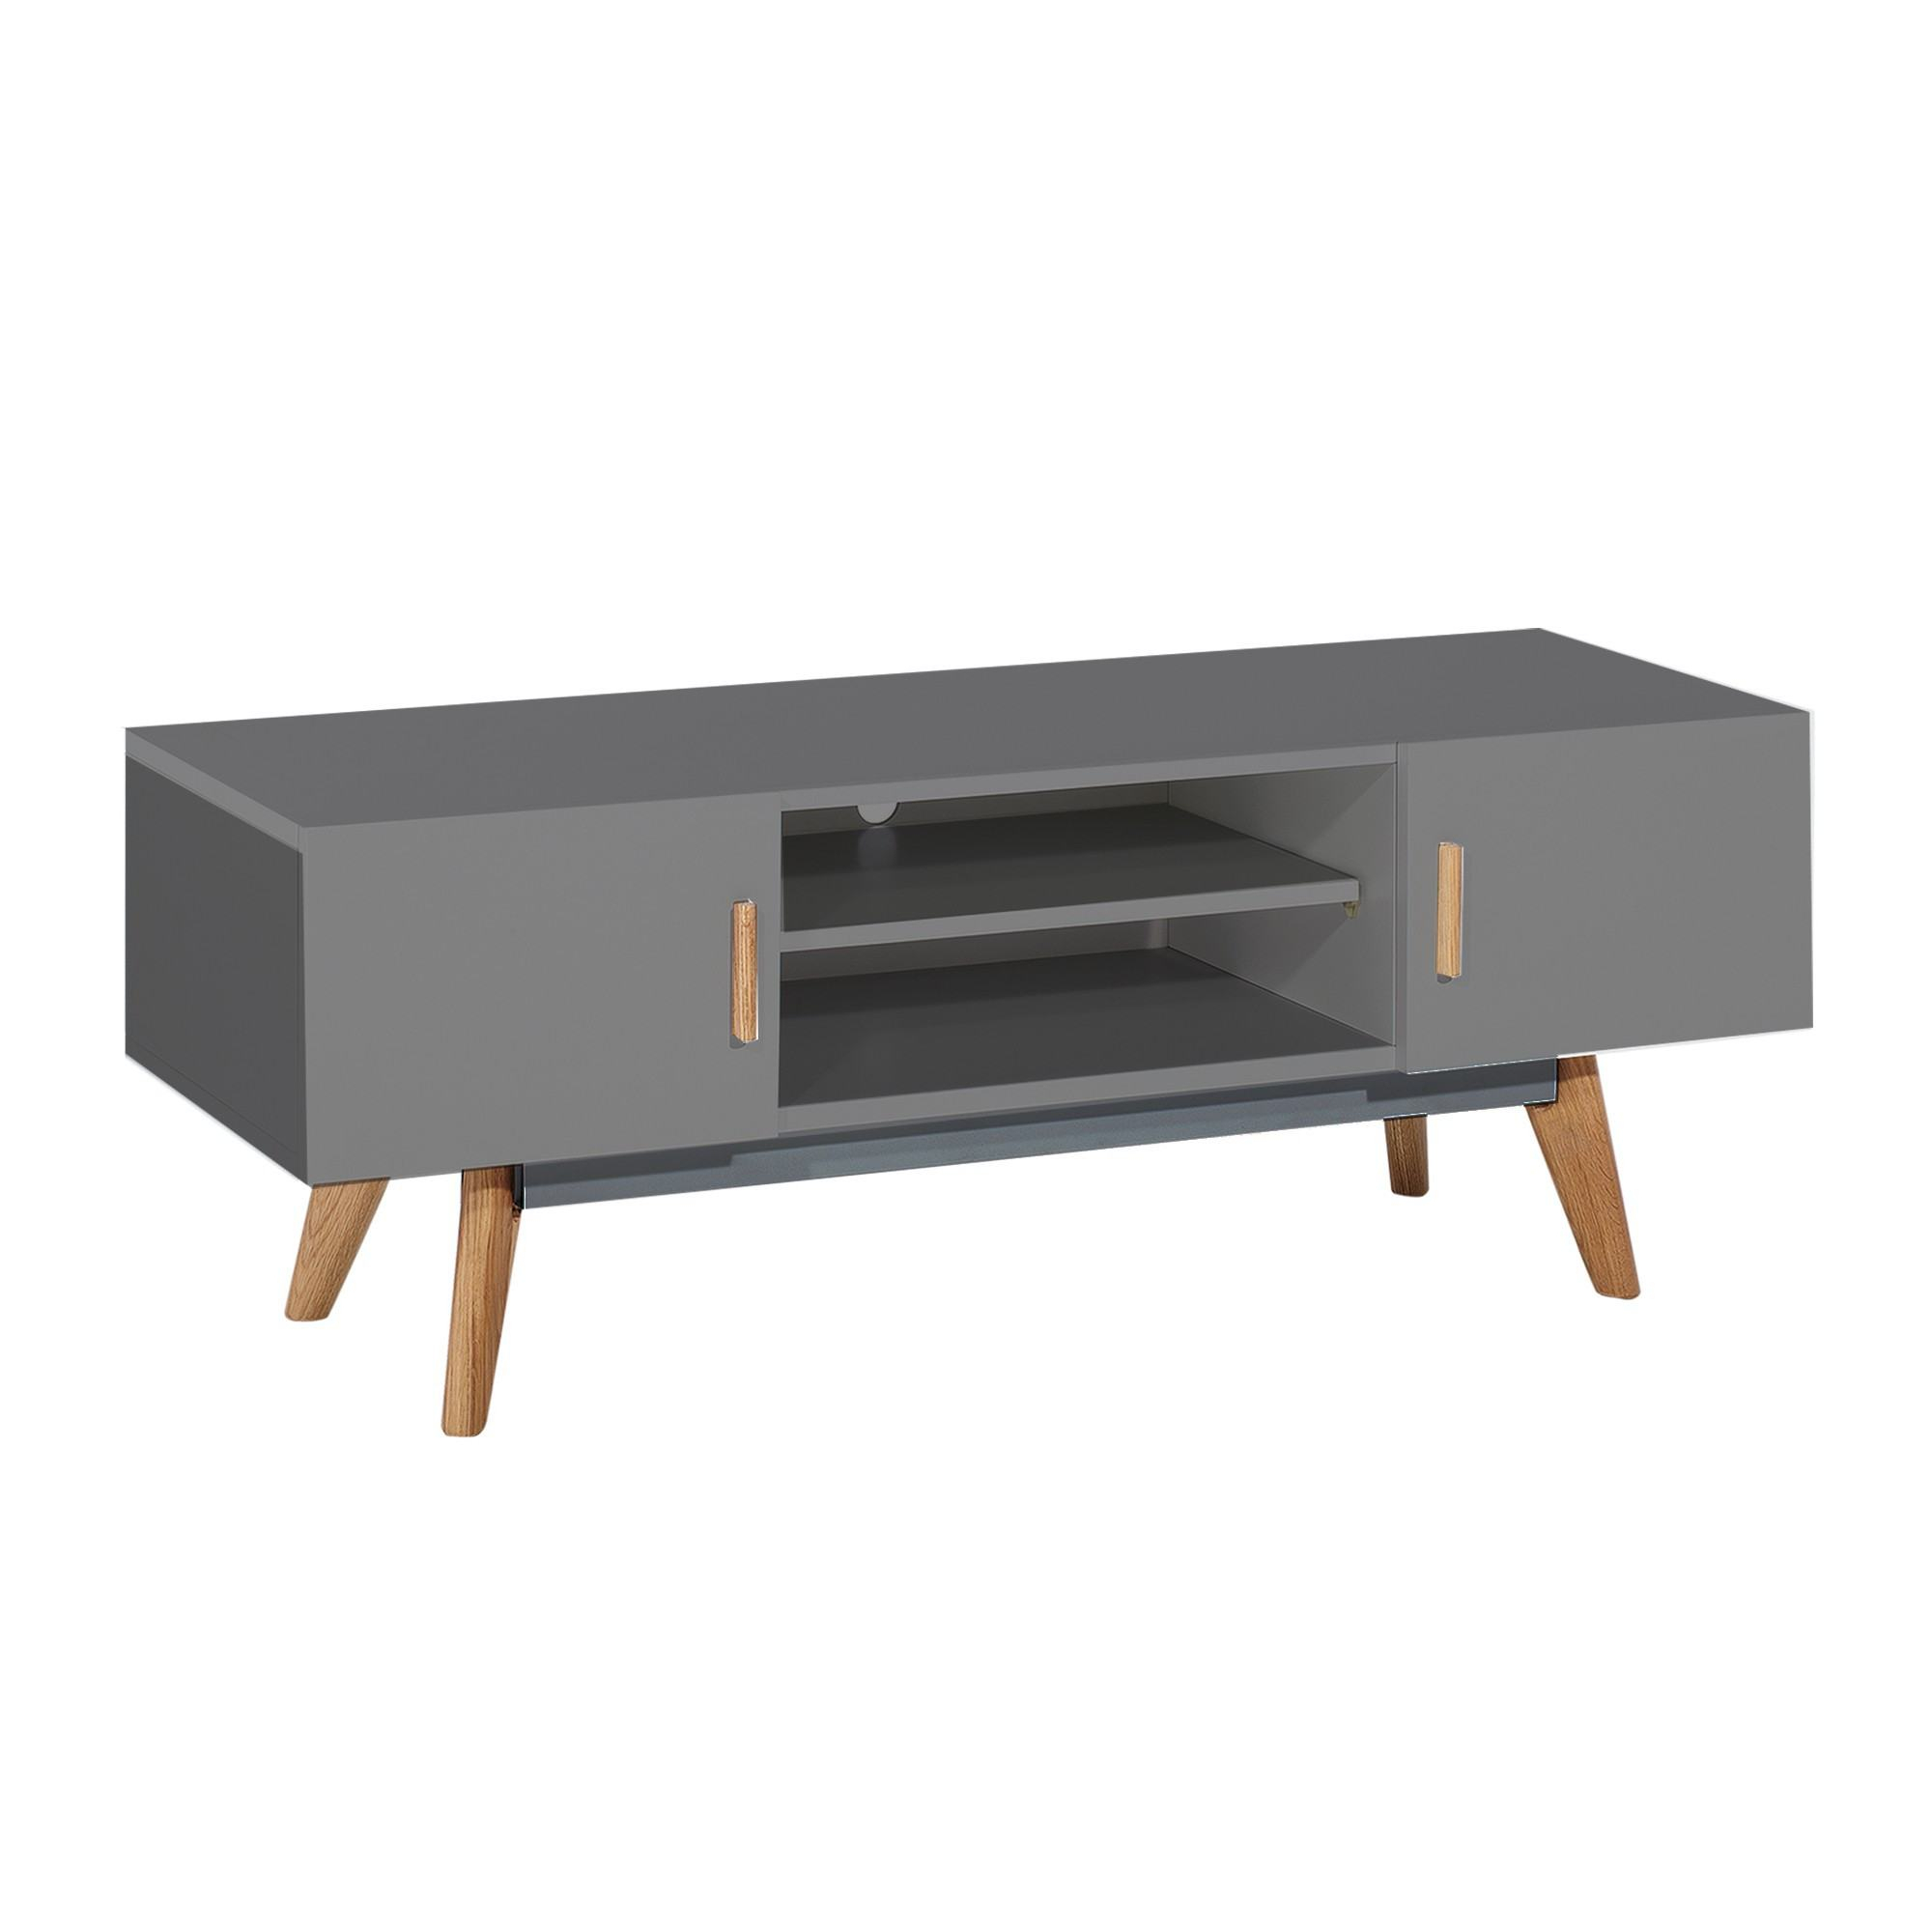 35 Creative Grey Tv Stand For Living Room Decor | Cakestandlady For Sinclair Grey 74 Inch Tv Stands (View 16 of 30)